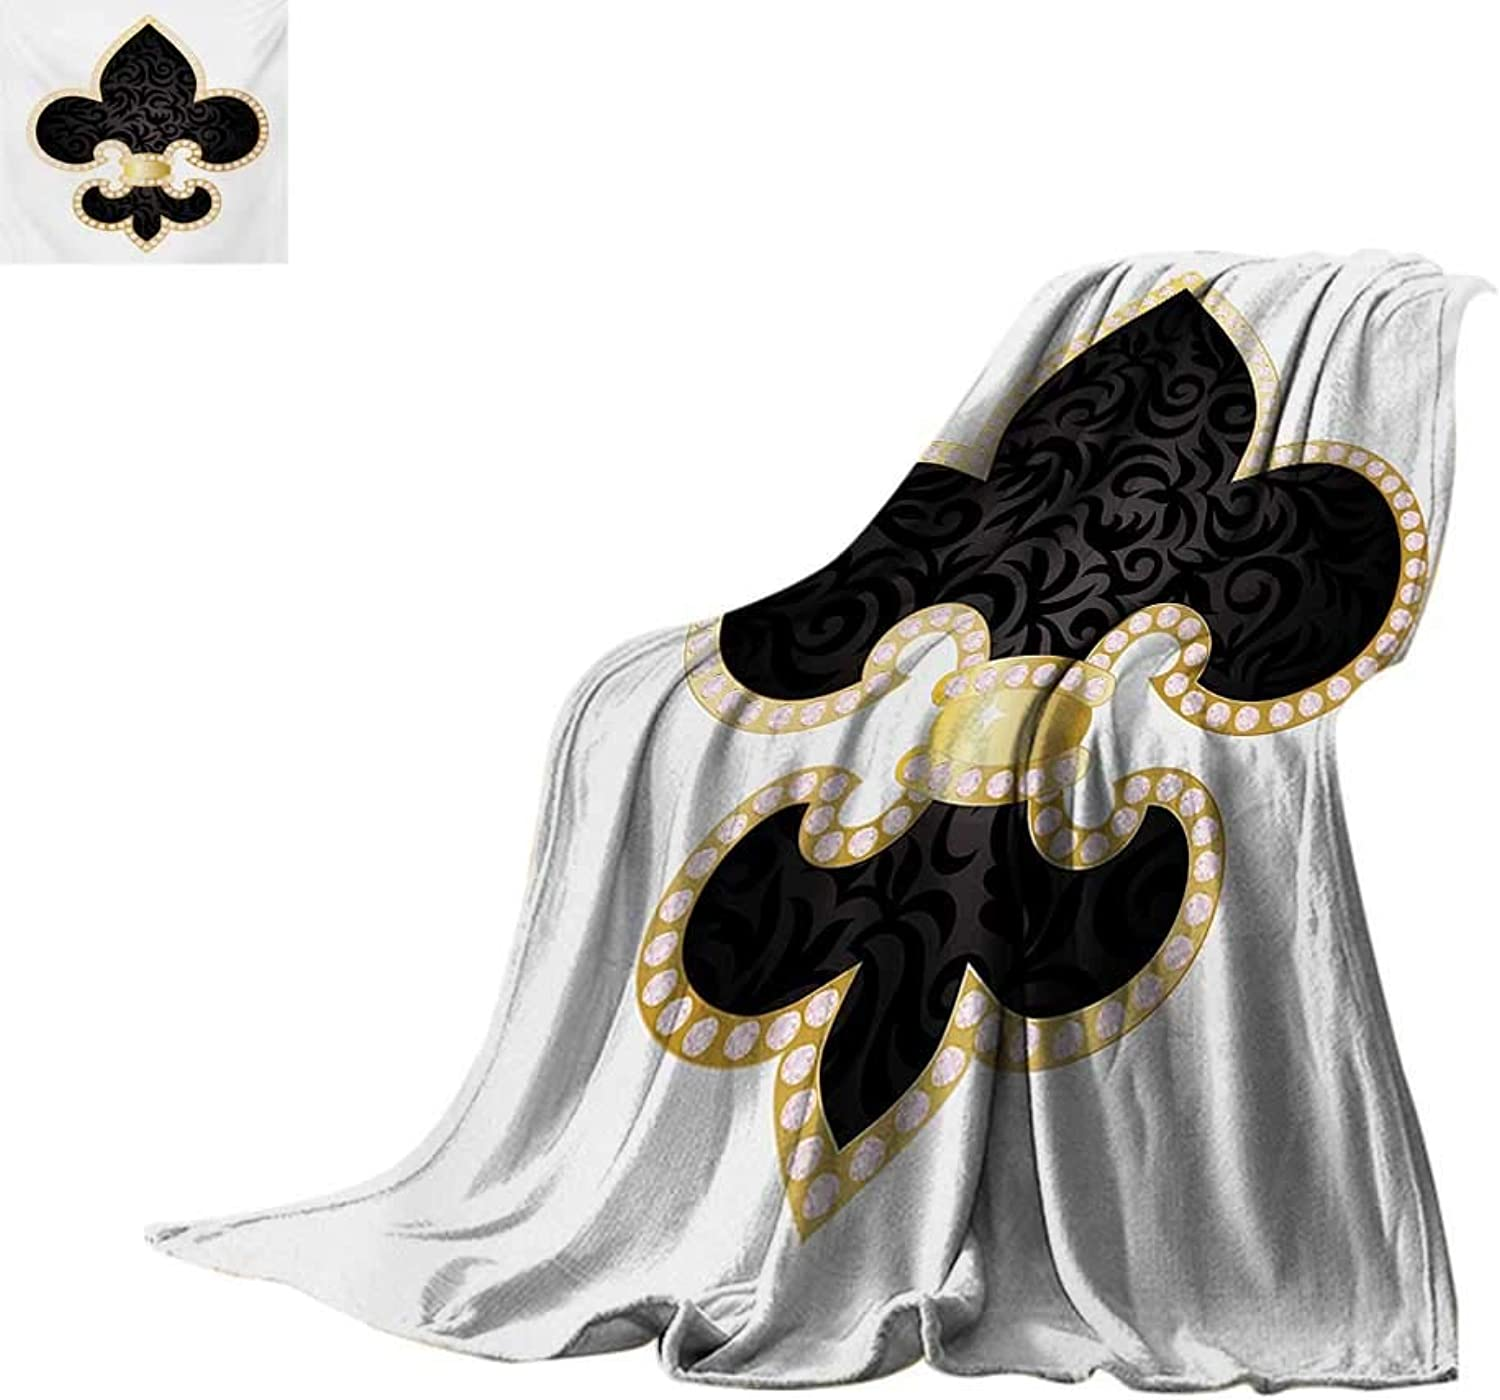 Fleur De Lis Weave Pattern Blanket Royal Legend Lily Throne France Empire Family Insignia Design Image Summer Quilt Comforter 60 x50  Yellow Black White